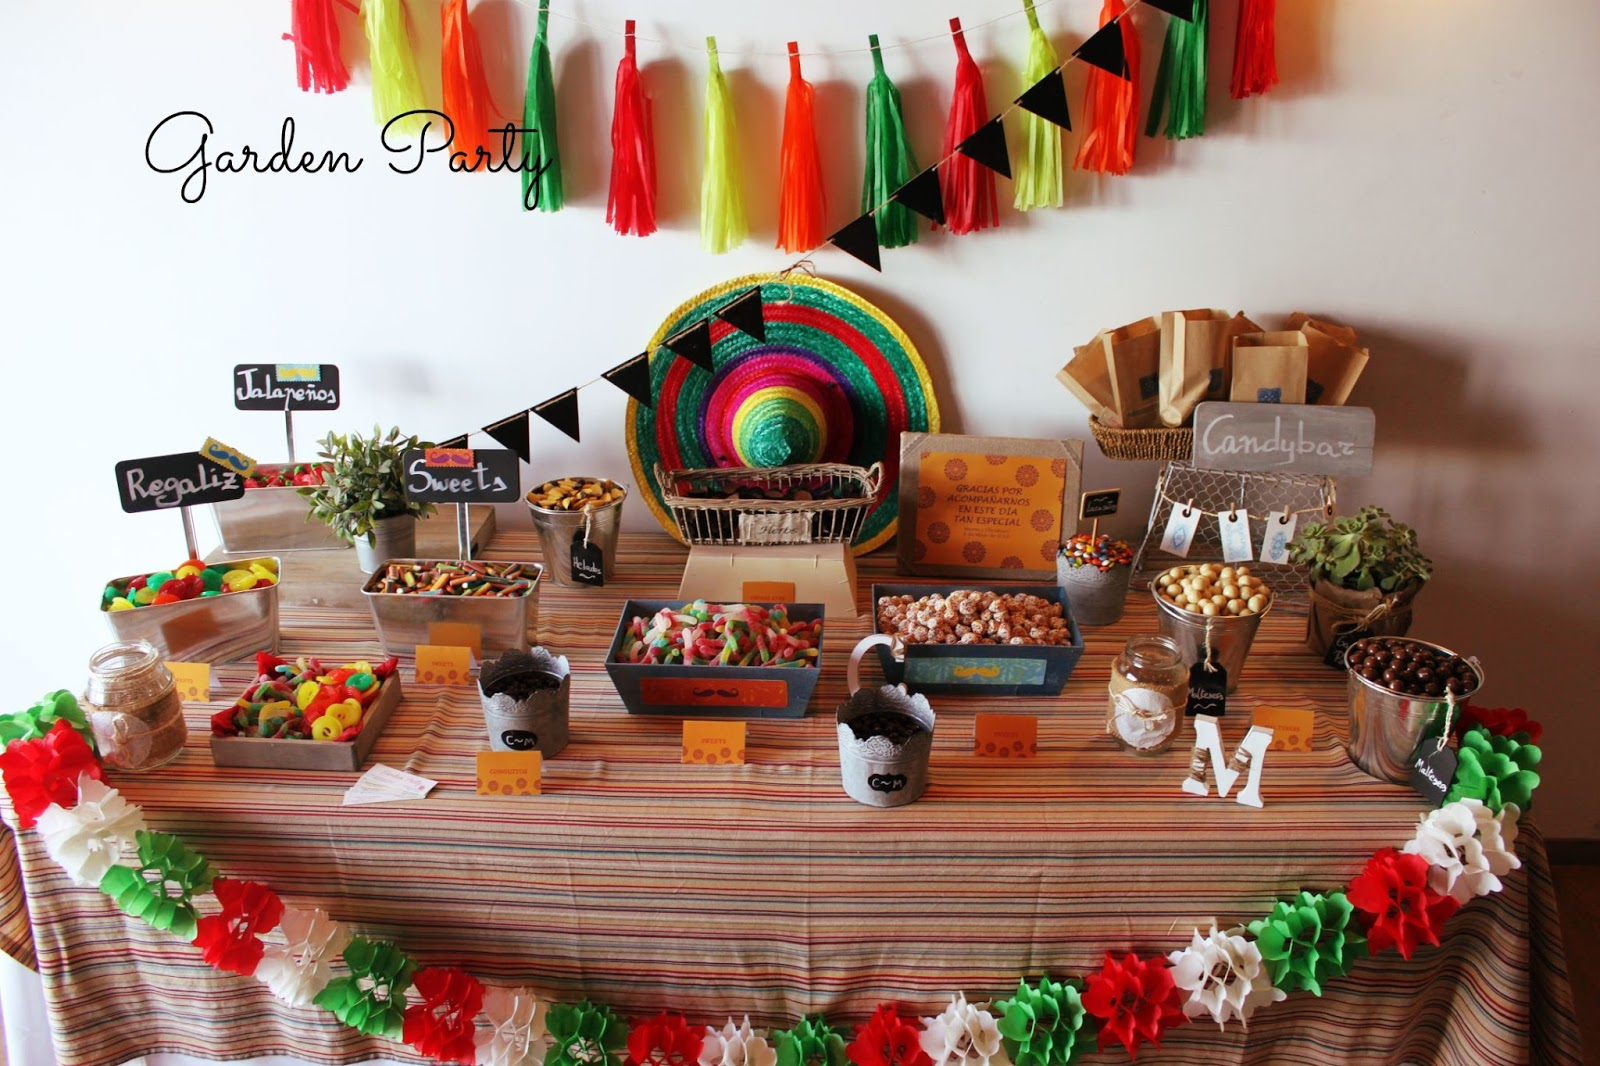 Garden party mesas dulces m laga mesa dulce para una for Decoracion kermes mexicana